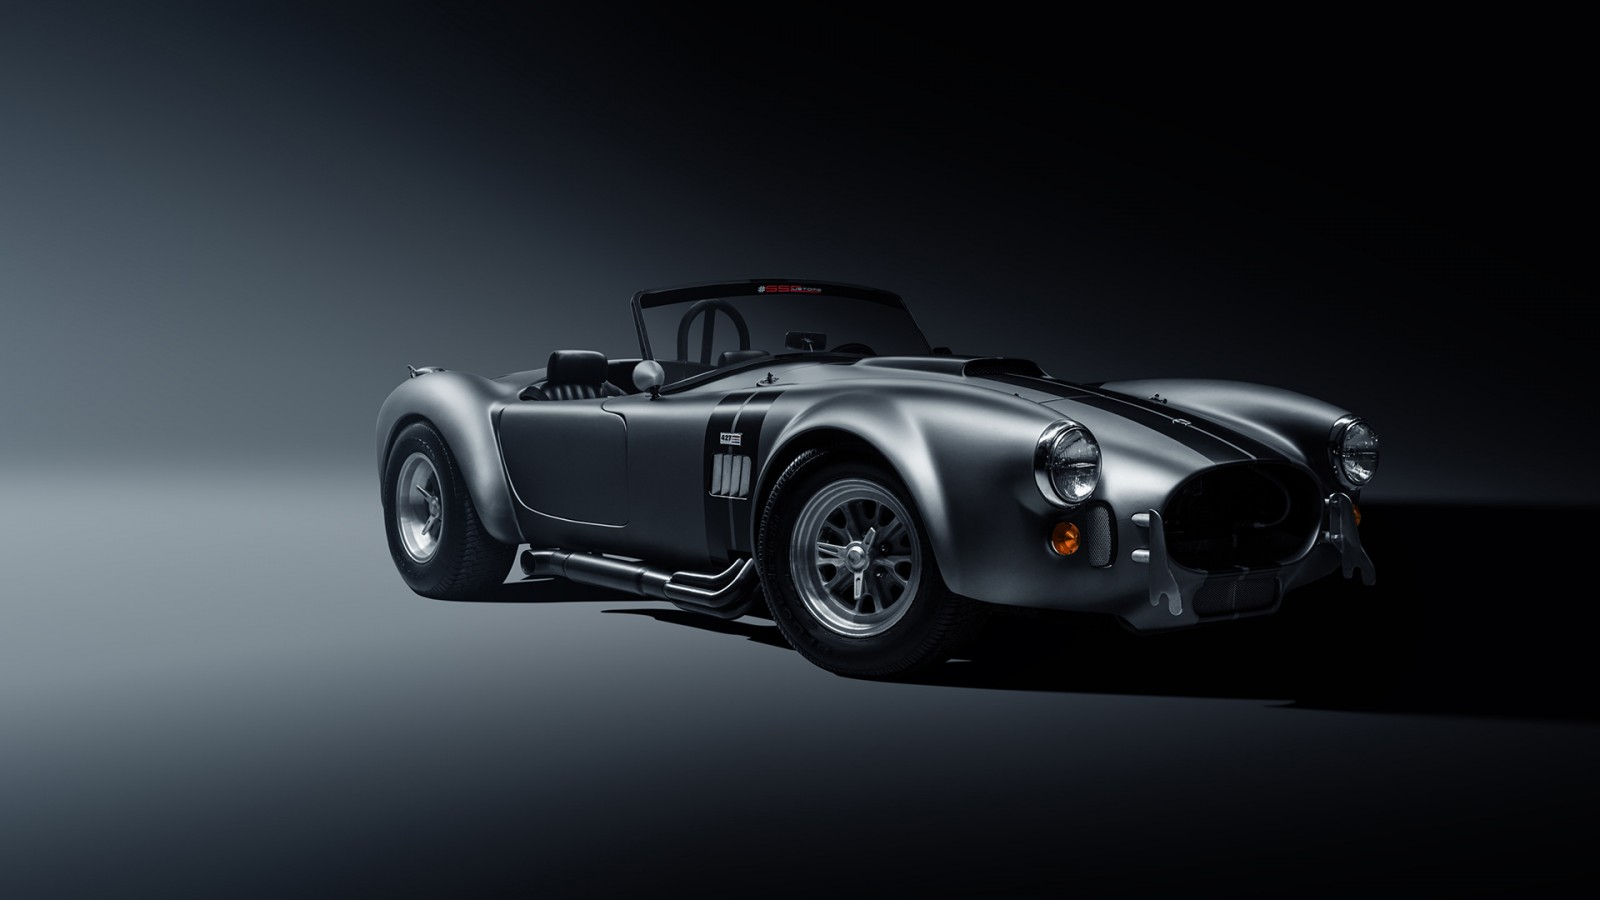 Shelby Cobra SS Customs Wallpaper | HD Car Wallpapers | ID #6527